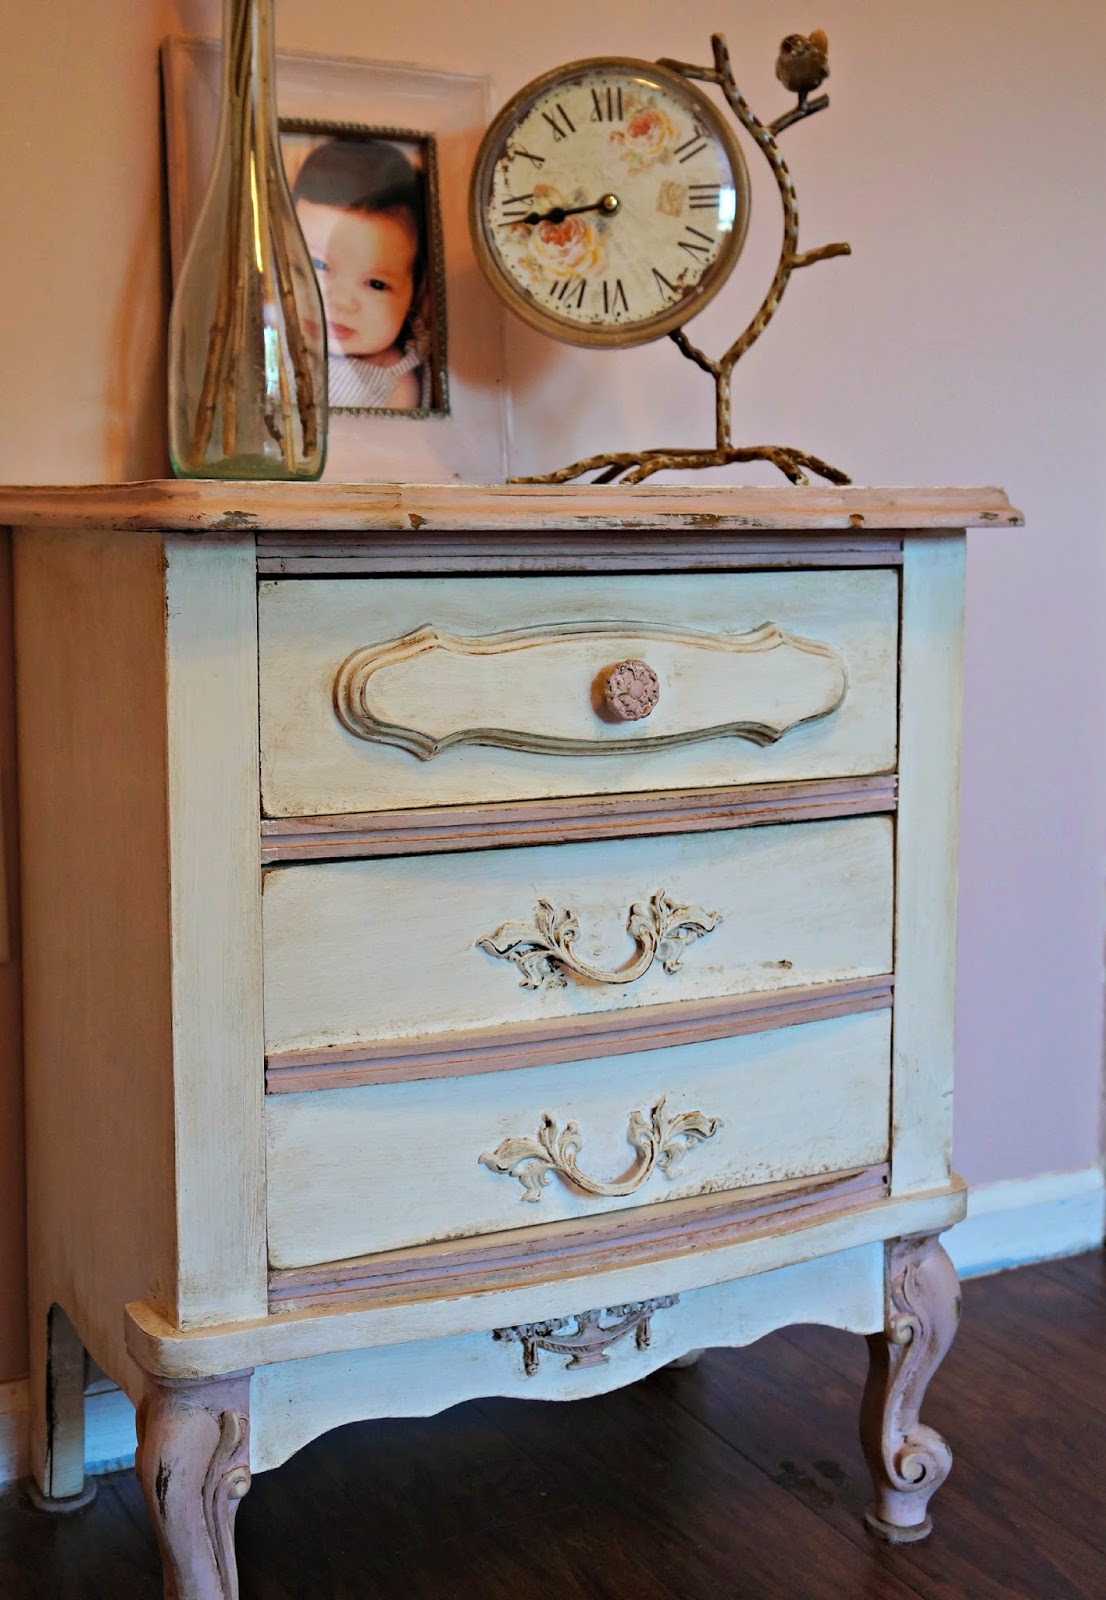 Refinishing Little Girls Room Furniture